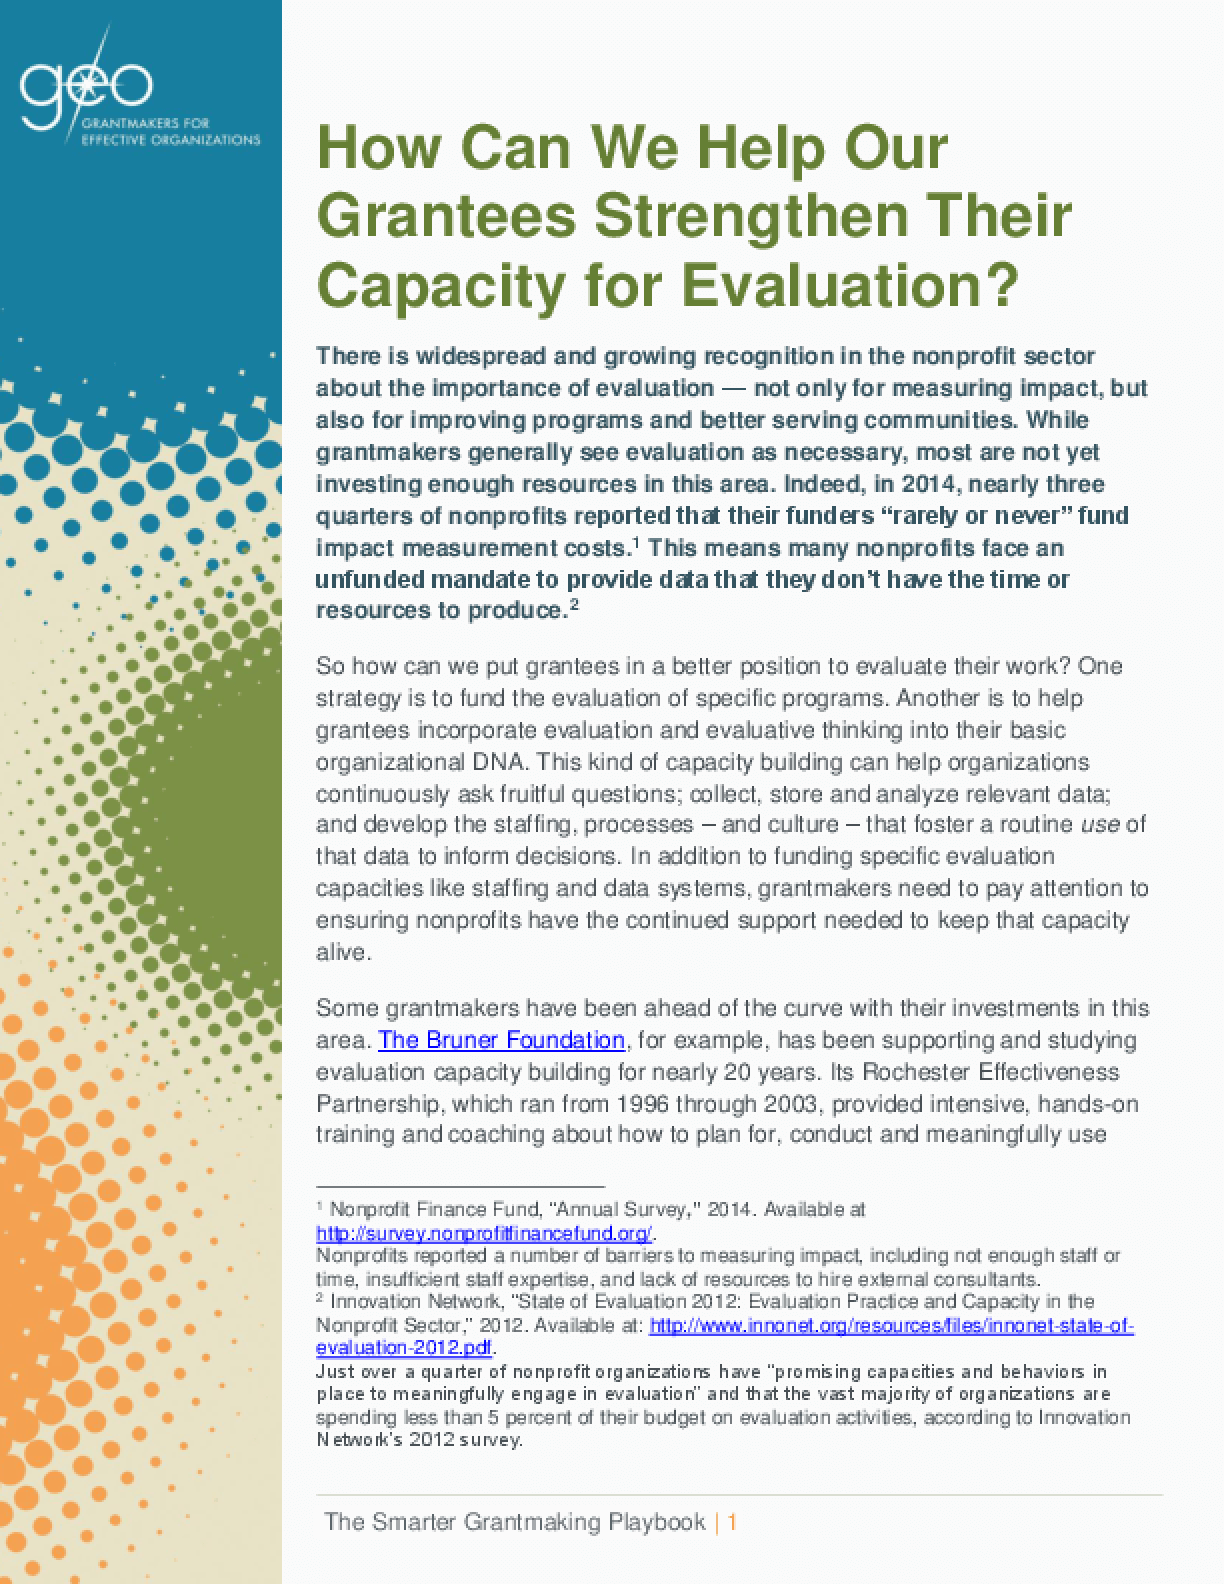 How Can We Help Our Grantees Strengthen Their Capacity for Evaluation?